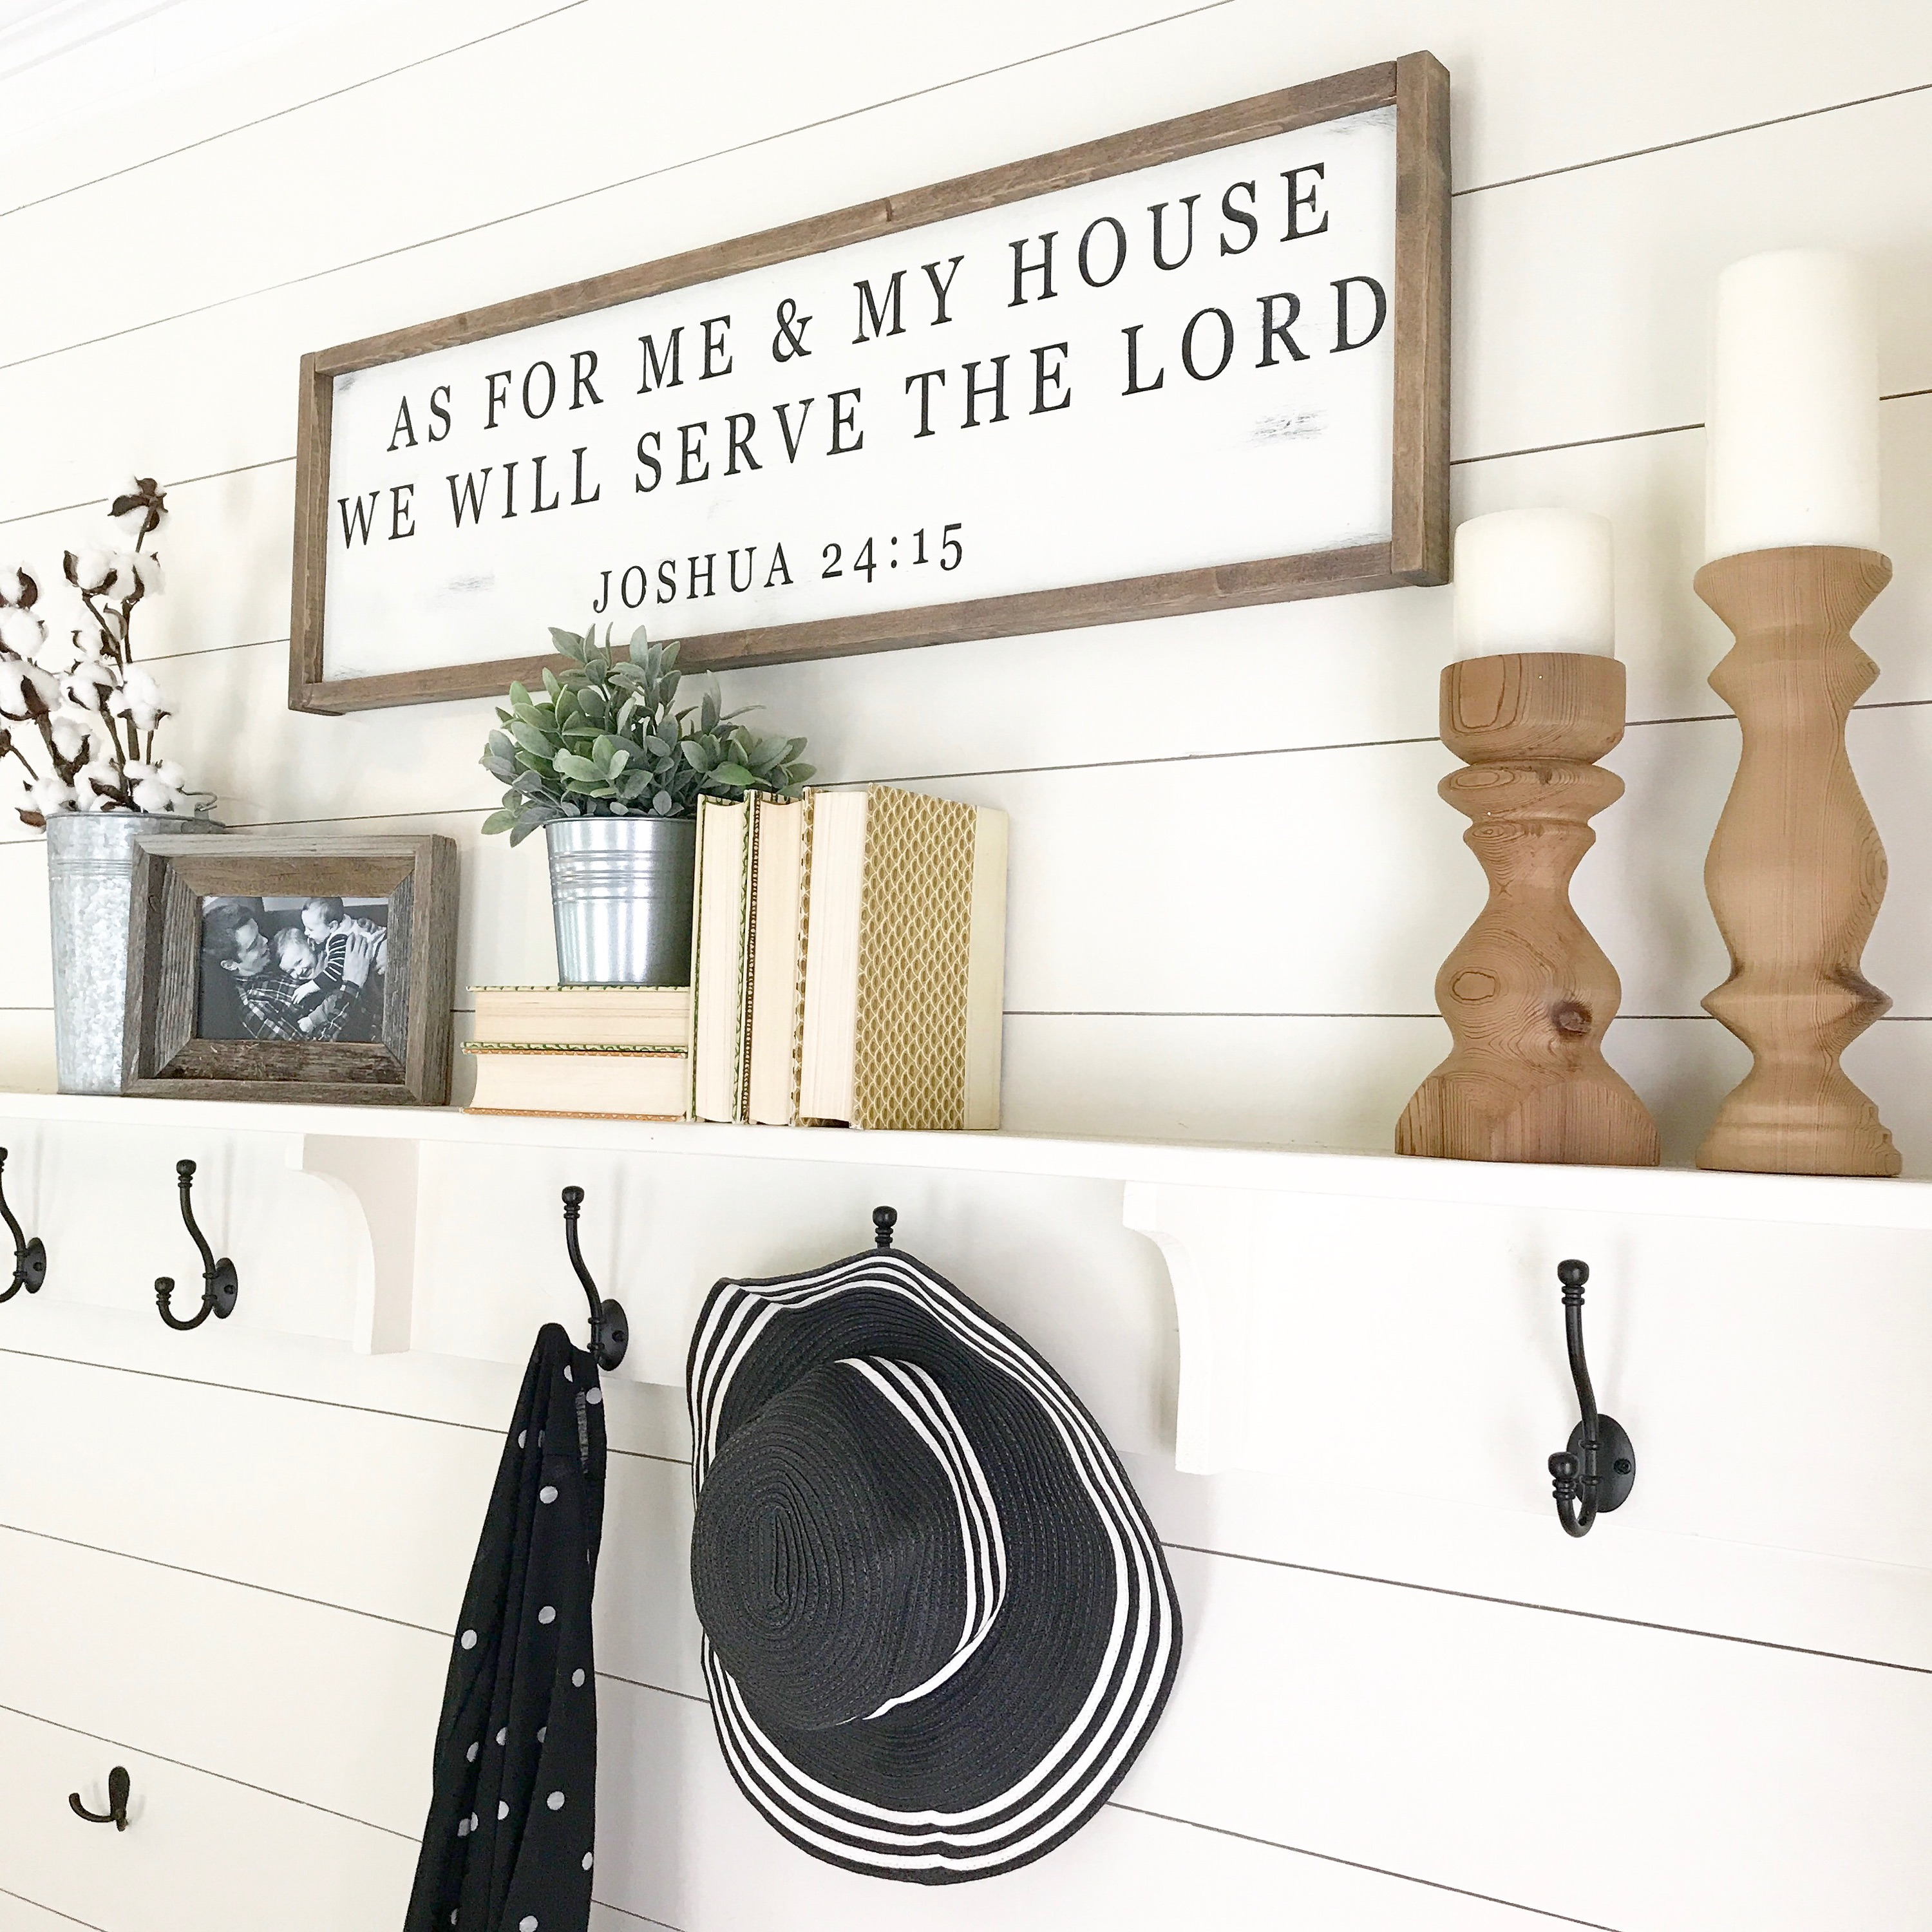 As For Me and My House Farmhouse Sign Tutorial! Fixer Upper style Farmhouse Sign. Joshua 24:15 Sign Tutorial!